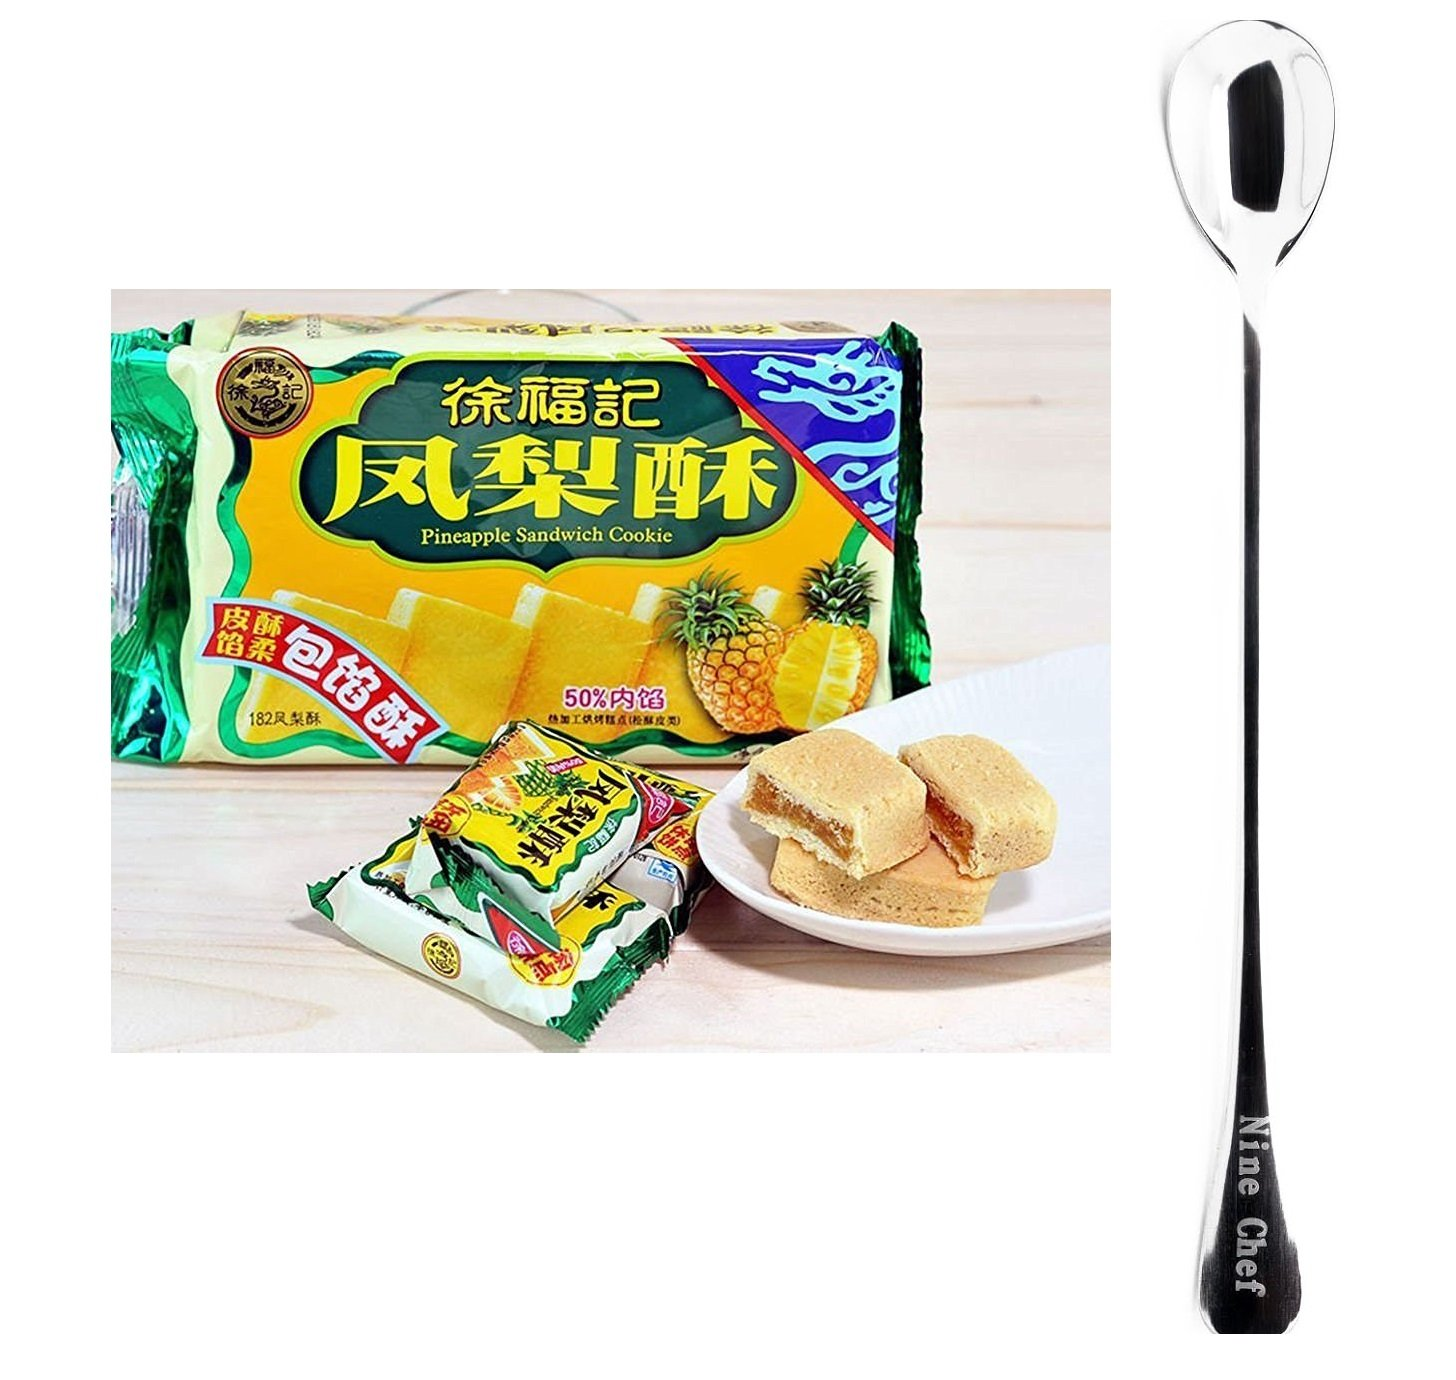 Yummy Chinese® 徐福记凤梨酥182g*2pcs XuFuJi Pineapple Cake Cookie Taiwan Flavor 182g*2pcs - Chinese Special Snack Food - With Free Gift